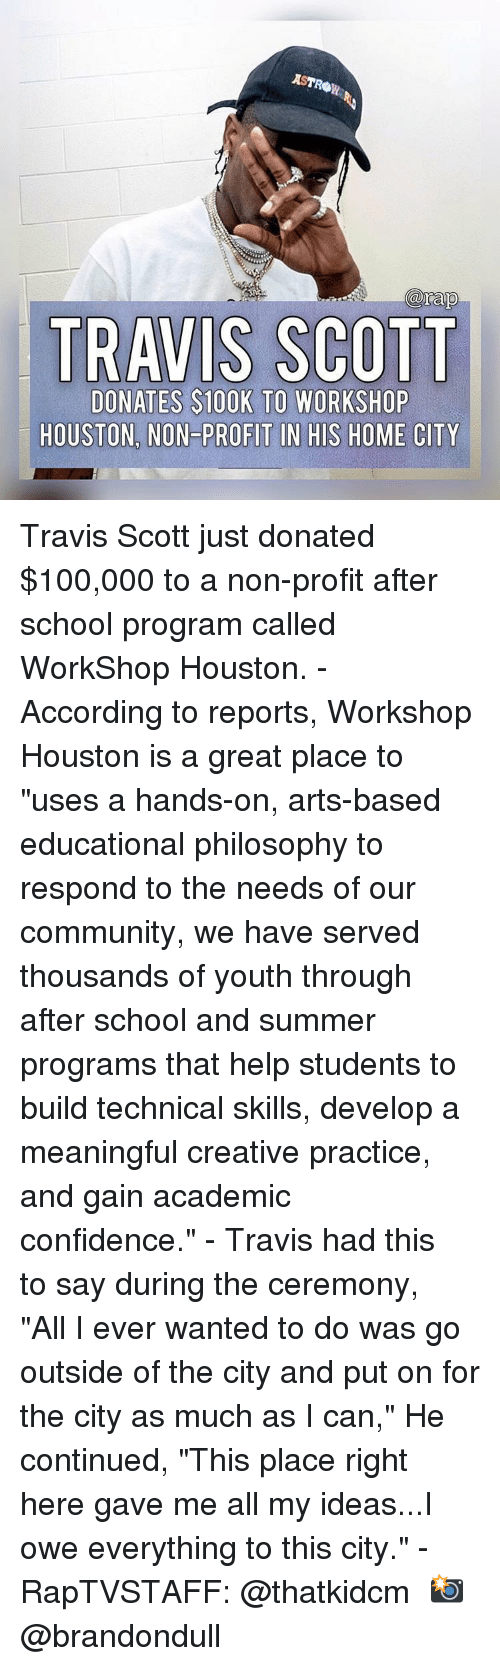 "Travis Scott: AST  arap  TRAVIS SCOTT  DONATES $100K TO WORKSHOP  HOUSTON, NON-PROFIT IN HIS HOME CITY Travis Scott just donated $100,000 to a non-profit after school program called WorkShop Houston.⁣ -⁣ According to reports, Workshop Houston is a great place to ""uses a hands-on, arts-based educational philosophy to respond to the needs of our community, we have served thousands of youth through after school and summer programs that help students to build technical skills, develop a meaningful creative practice, and gain academic confidence.""⁣ -⁣ Travis had this to say during the ceremony, ⁣ ⁣ ""All I ever wanted to do was go outside of the city and put on for the city as much as I can,"" He continued, ""This place right here gave me all my ideas...I owe everything to this city.""⁣ -⁣ RapTVSTAFF: @thatkidcm⁣ 📸 @brandondull"